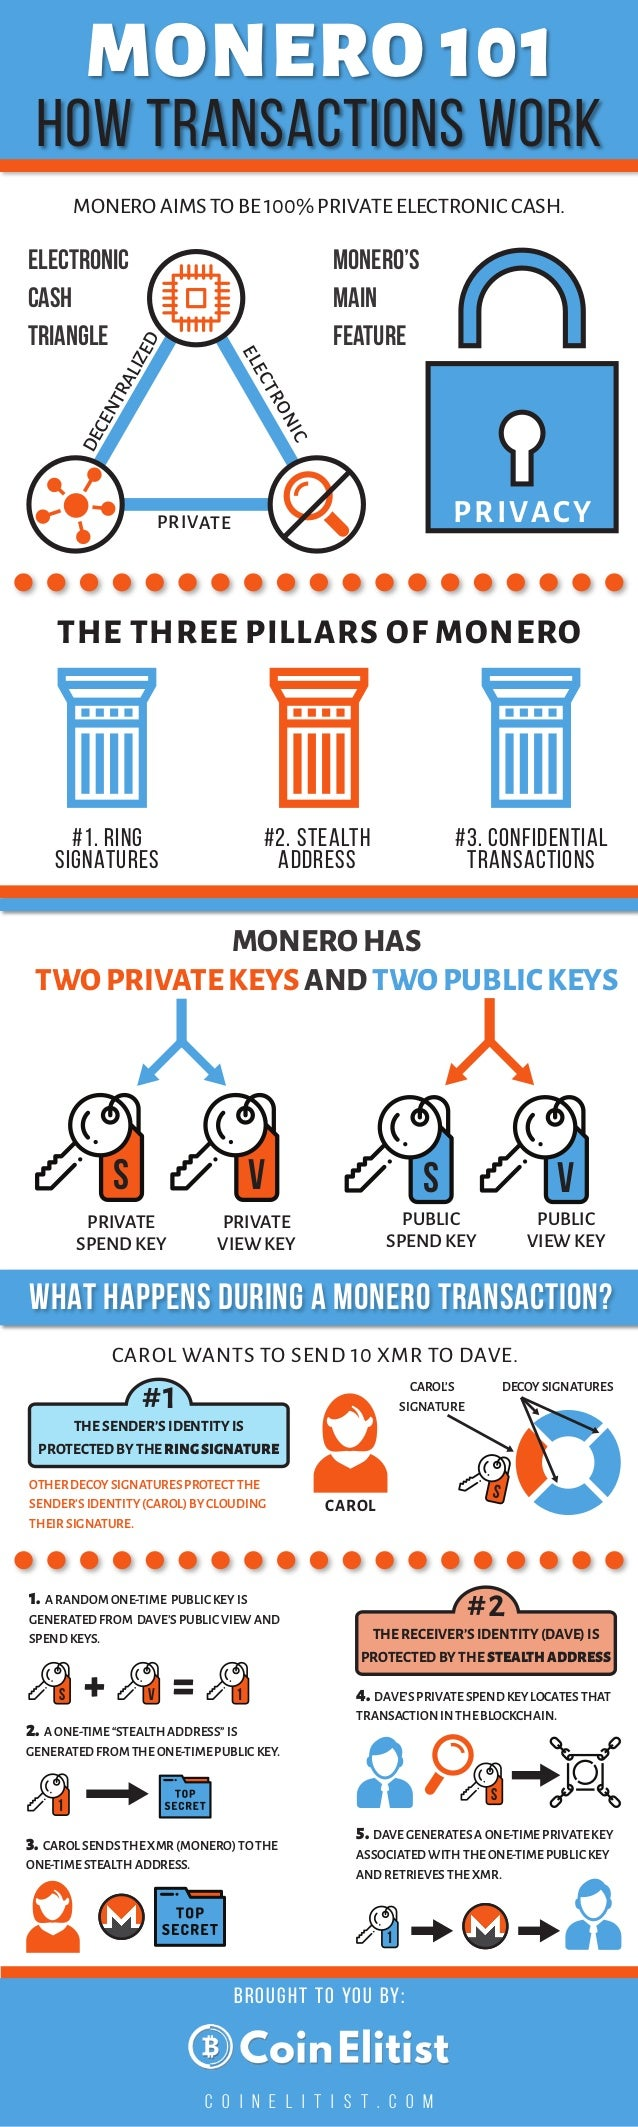 MONERO 101 HOW TRANSACTIONS WORK MONERO AIMS TO BE 100% PRIVATE ELECTRONIC CASH. BROUGHT TO YOU BY: C O I N E L I T I S T ...